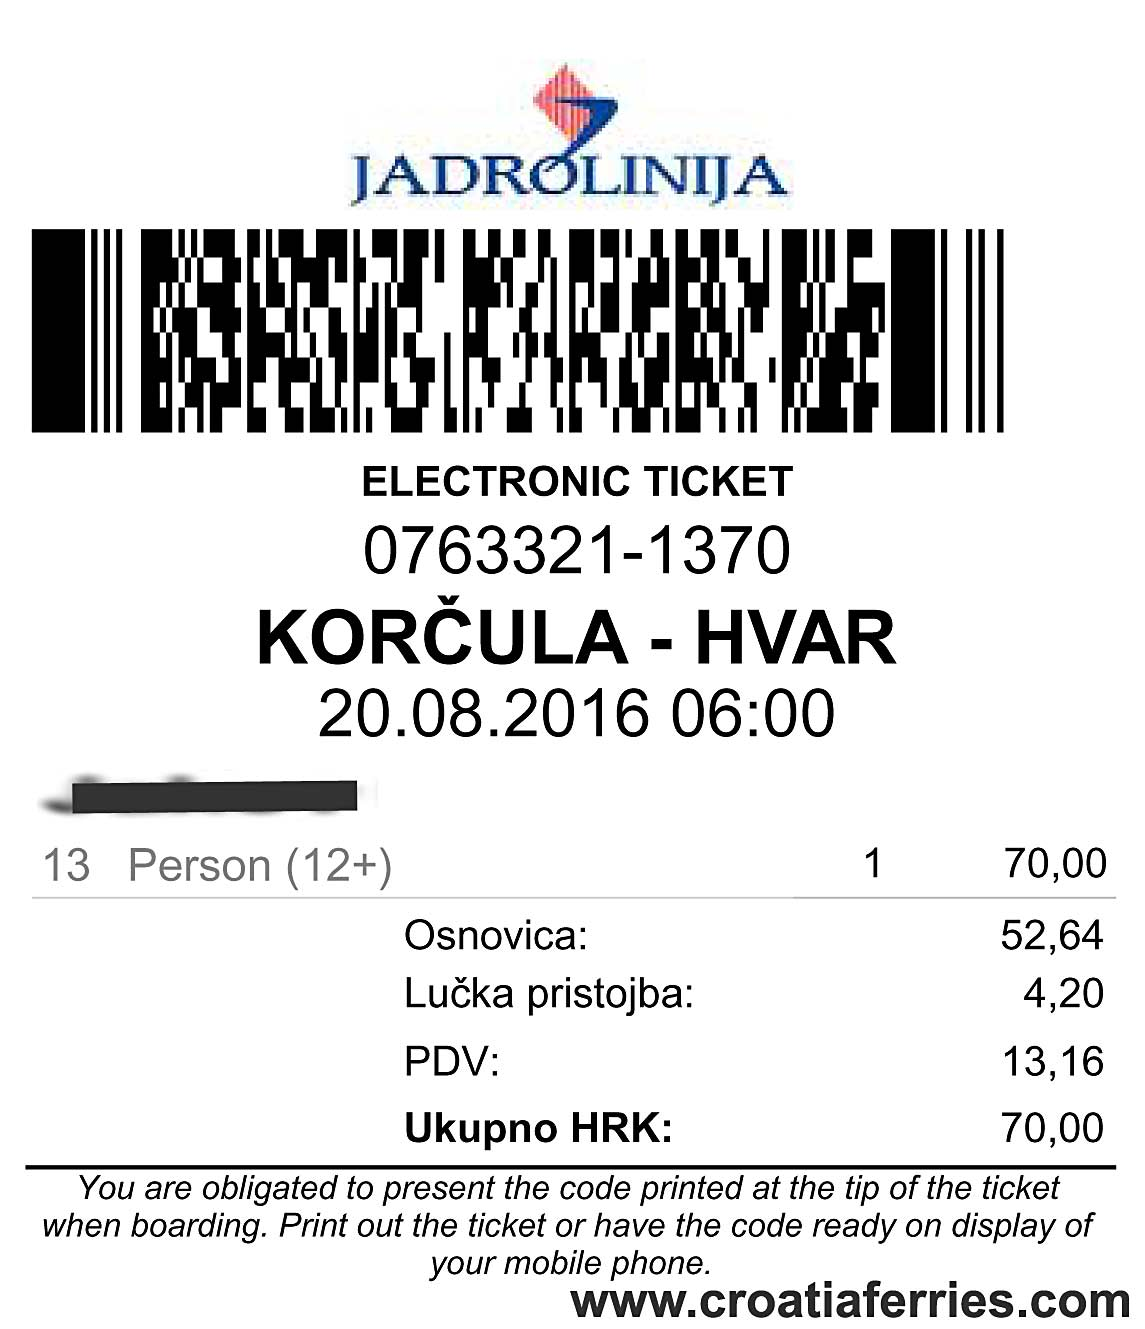 jadrolinija-electronic-ticket2016a